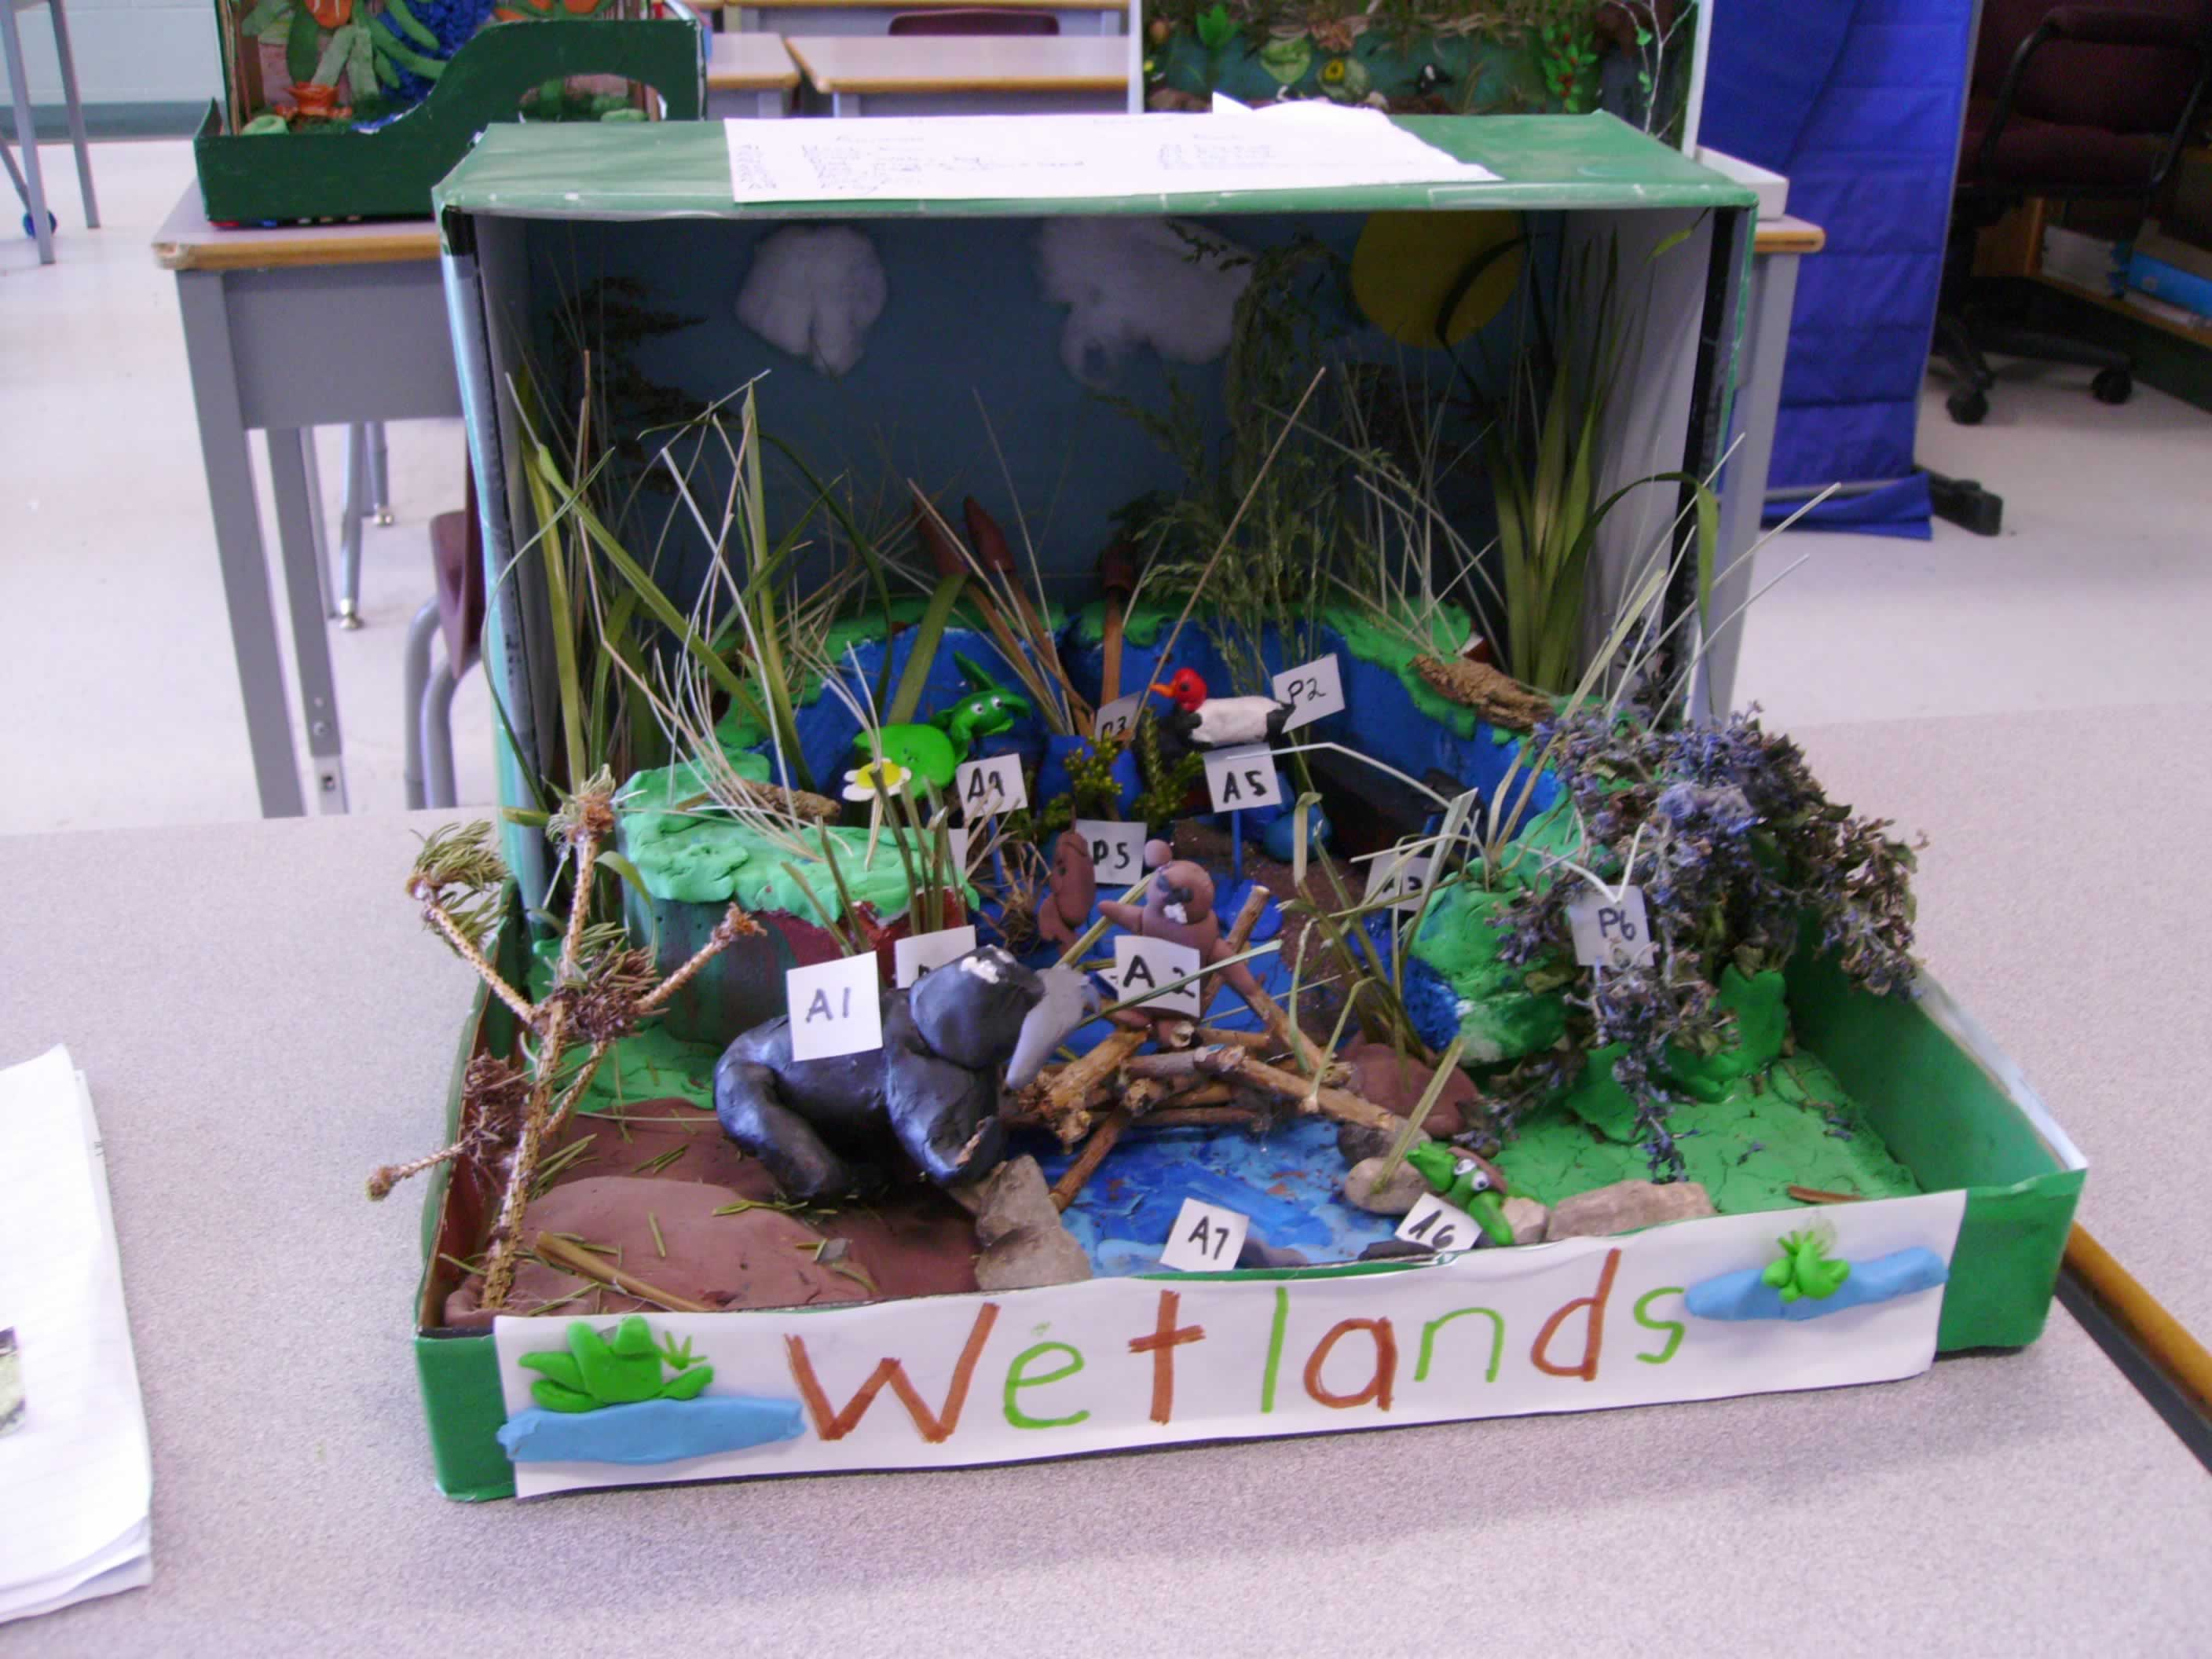 Kids Diorama With Details: Shoebox Diorama Ideas For Kids - Google Search